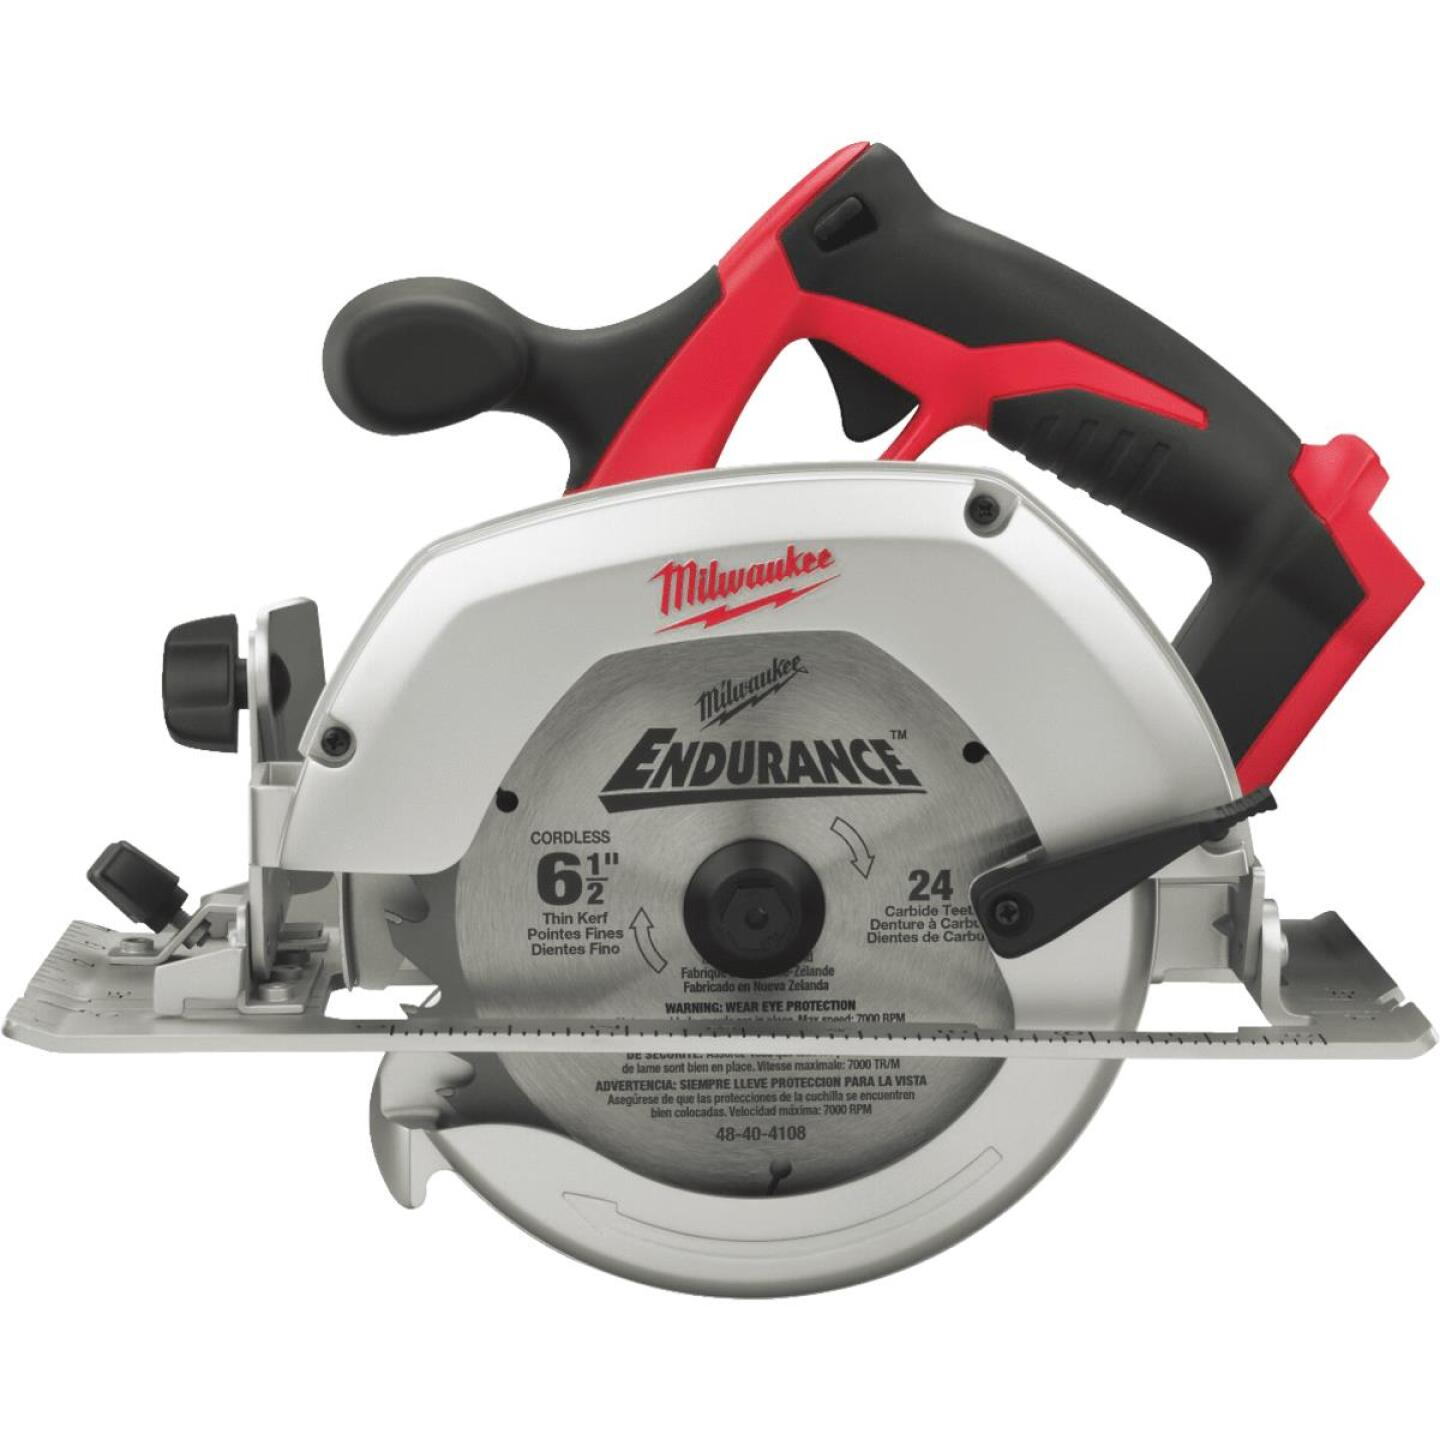 Milwaukee M18 18 Volt Lithium-Ion 6-1/2 In. Cordless Circular Saw (Bare Tool) Image 1